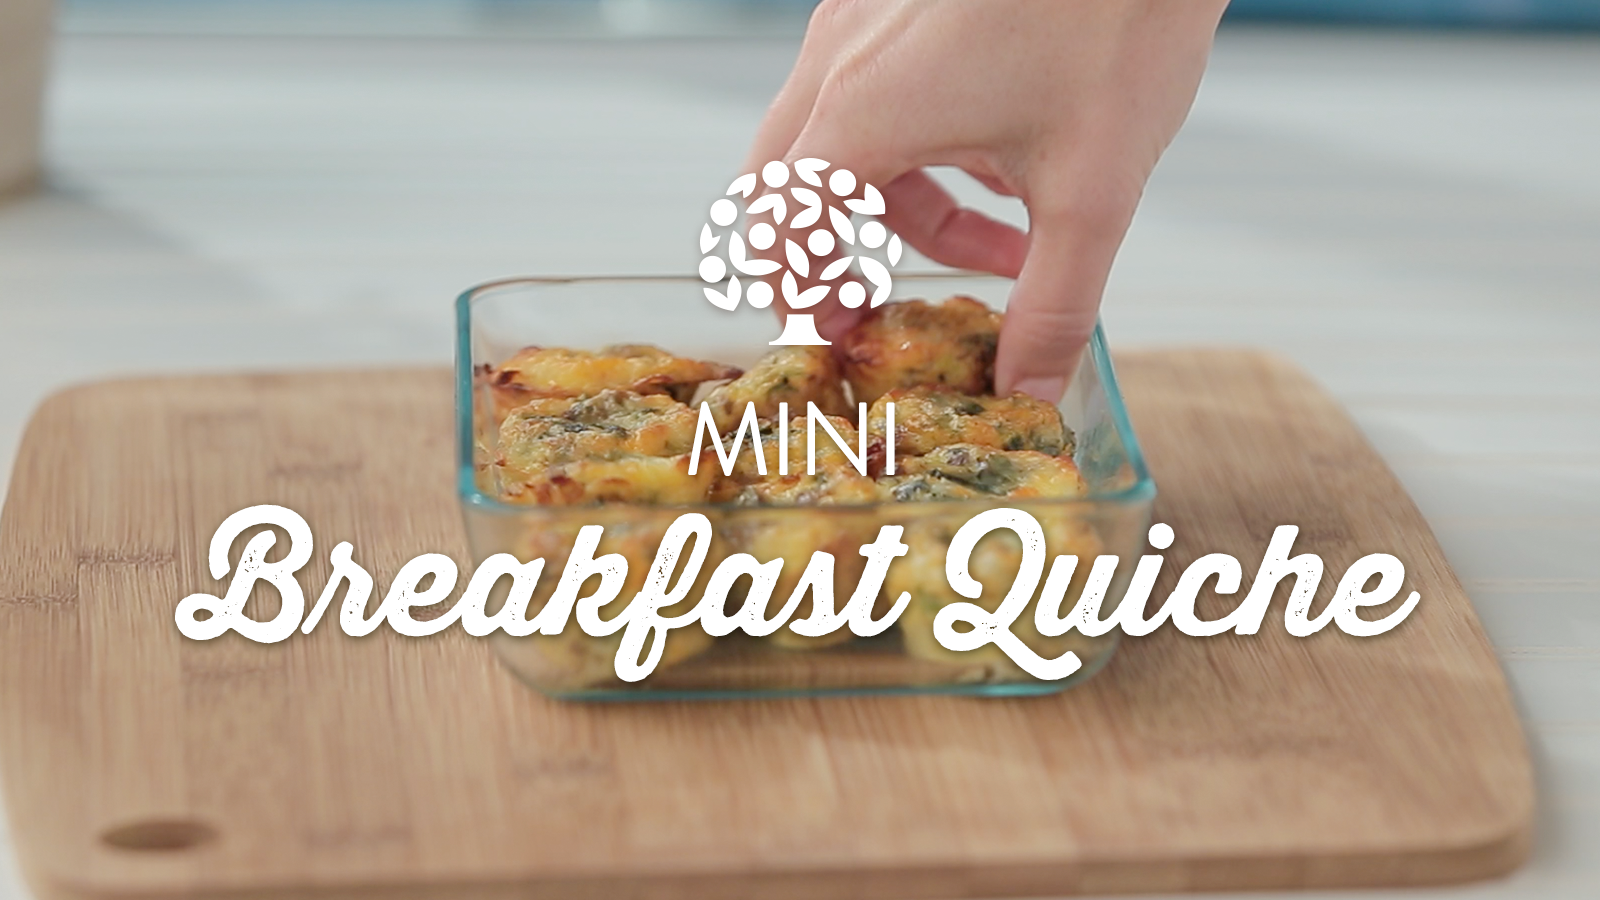 Mini Breakfast Quiche Recipe